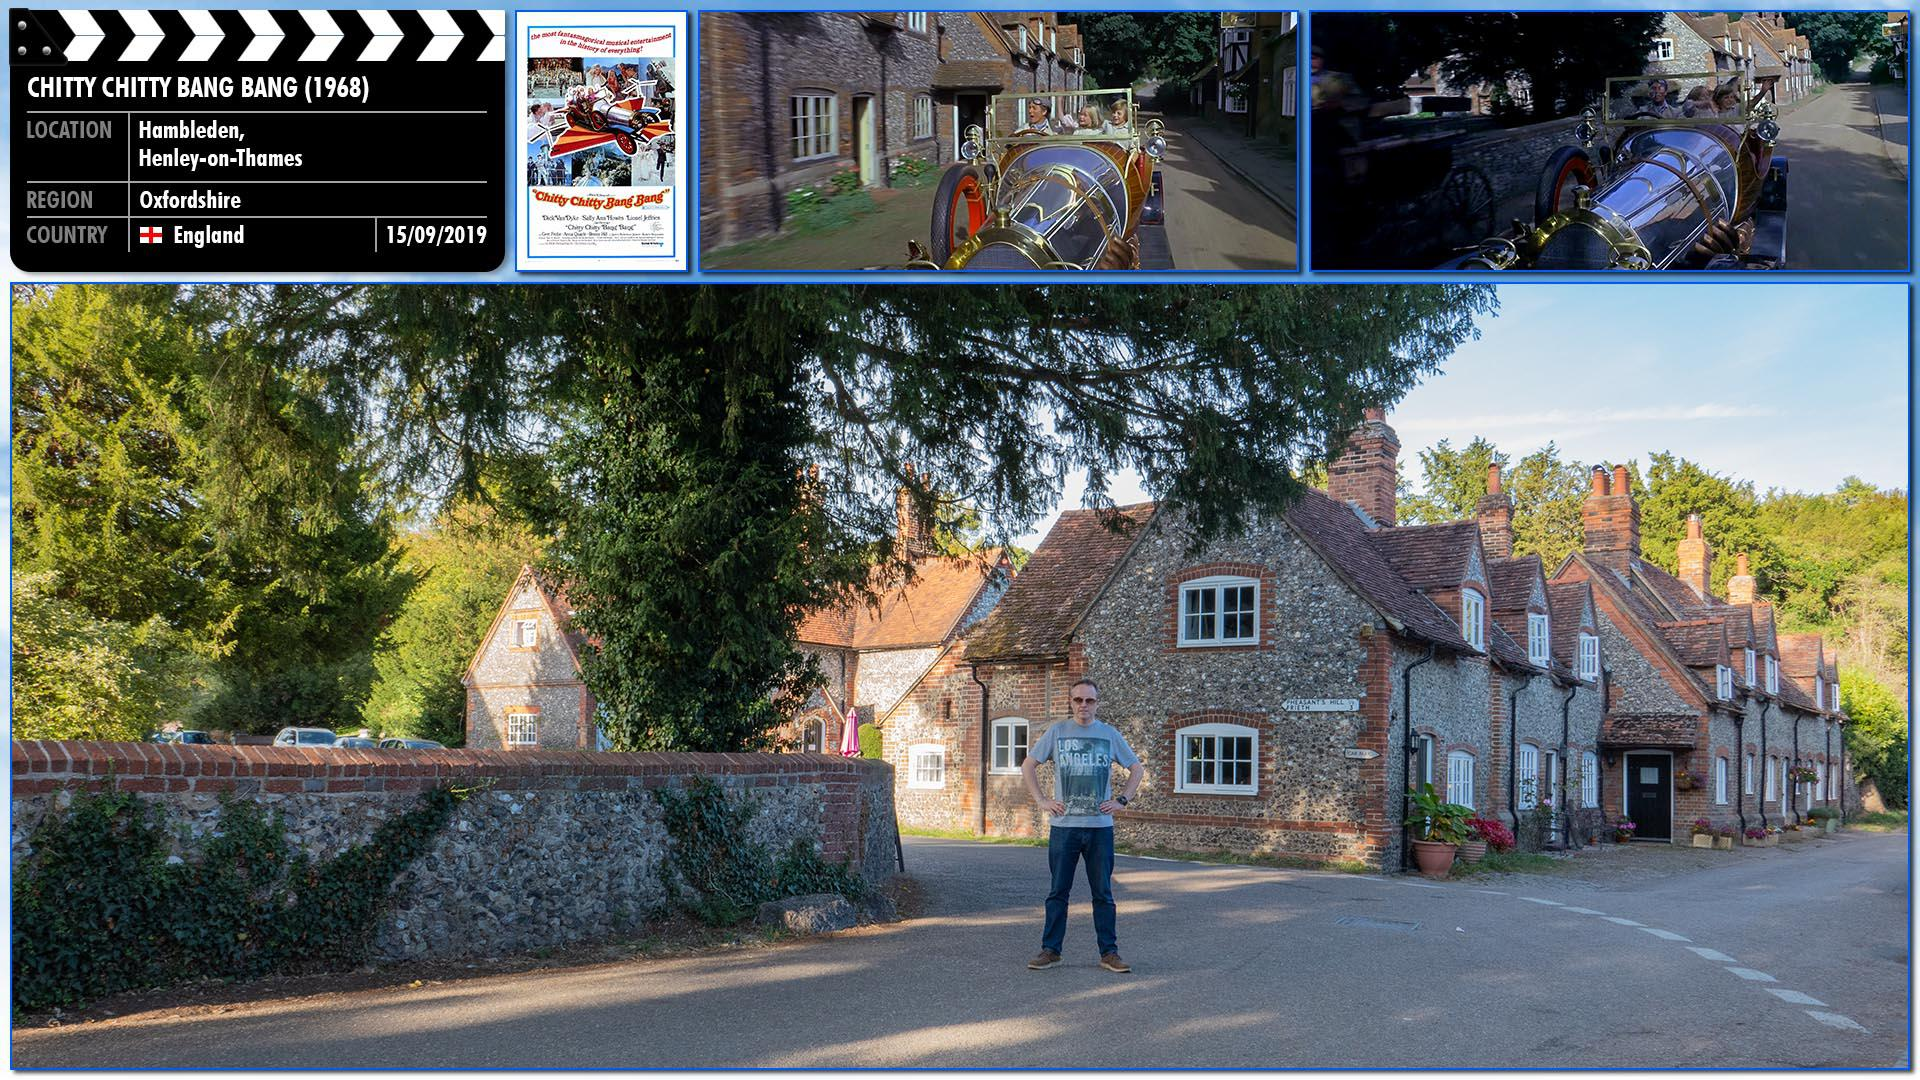 Filming location photo for Chitty Chitty Bang Bang (1968) 2 of 3